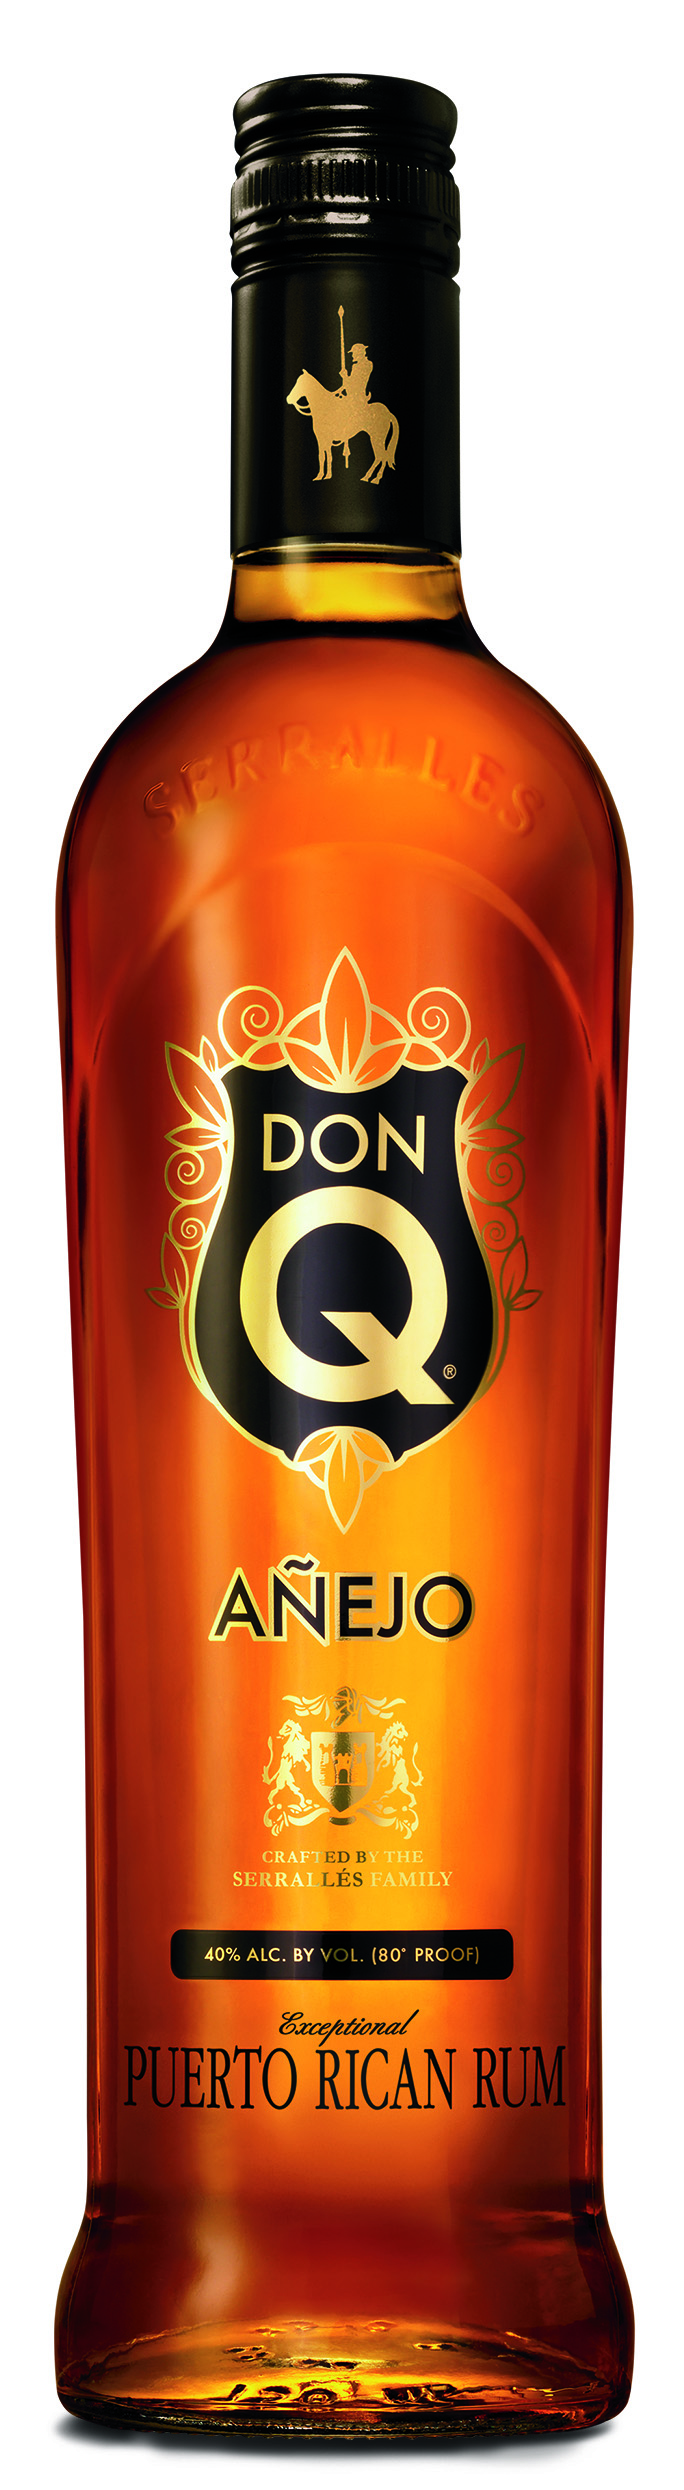 DON_Q_ANEJO_750ML_